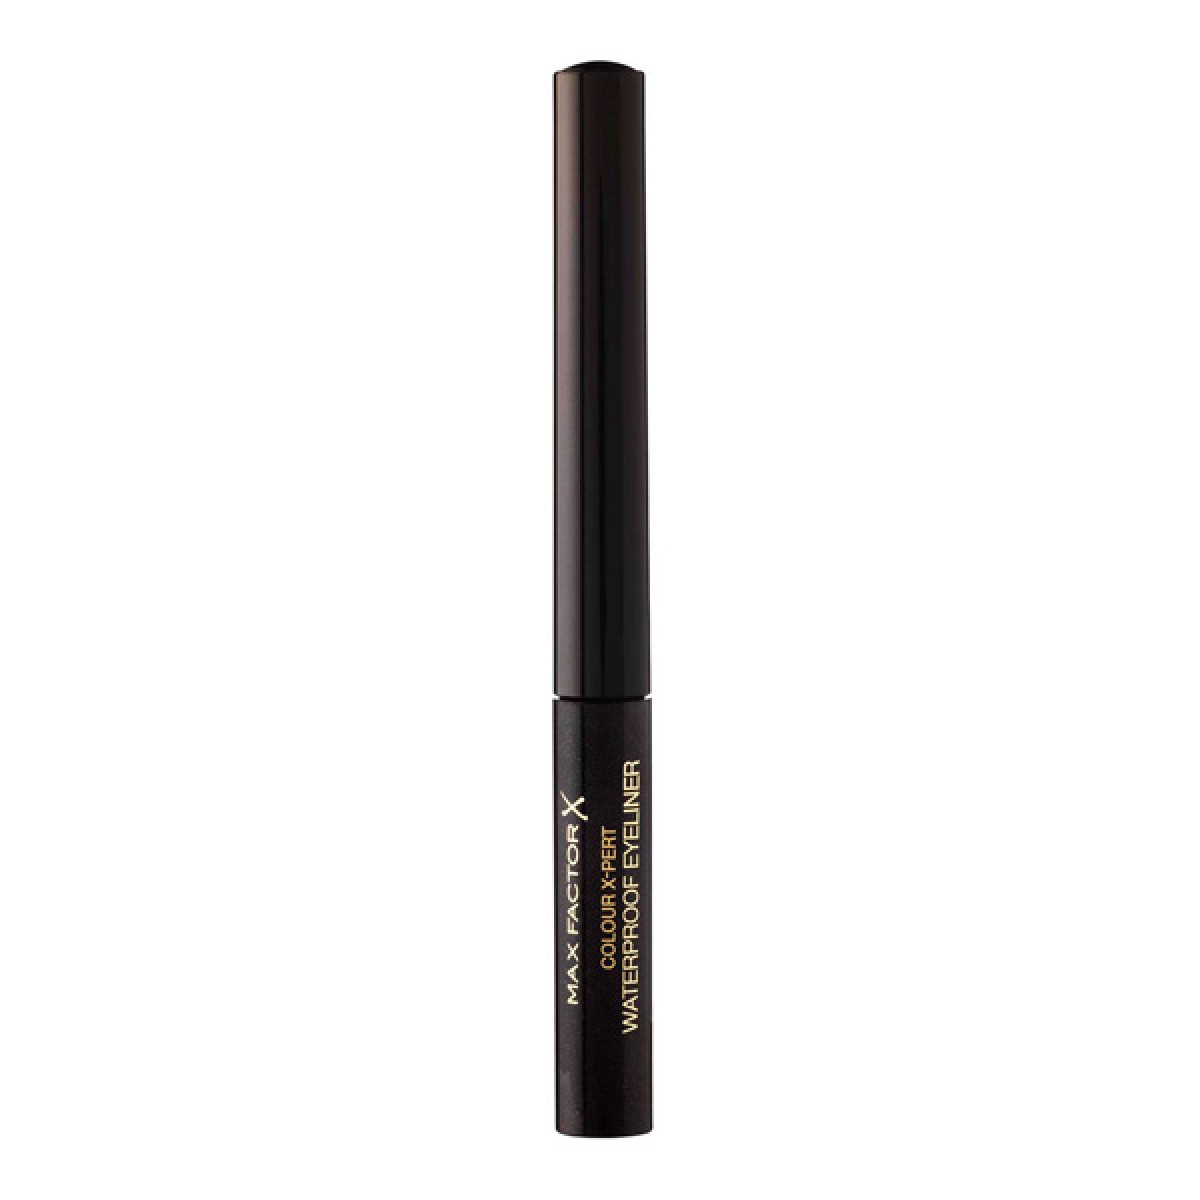 Eyeliner Colour X-pert Max Factor - Farve: 02 - Metallic Anthracite